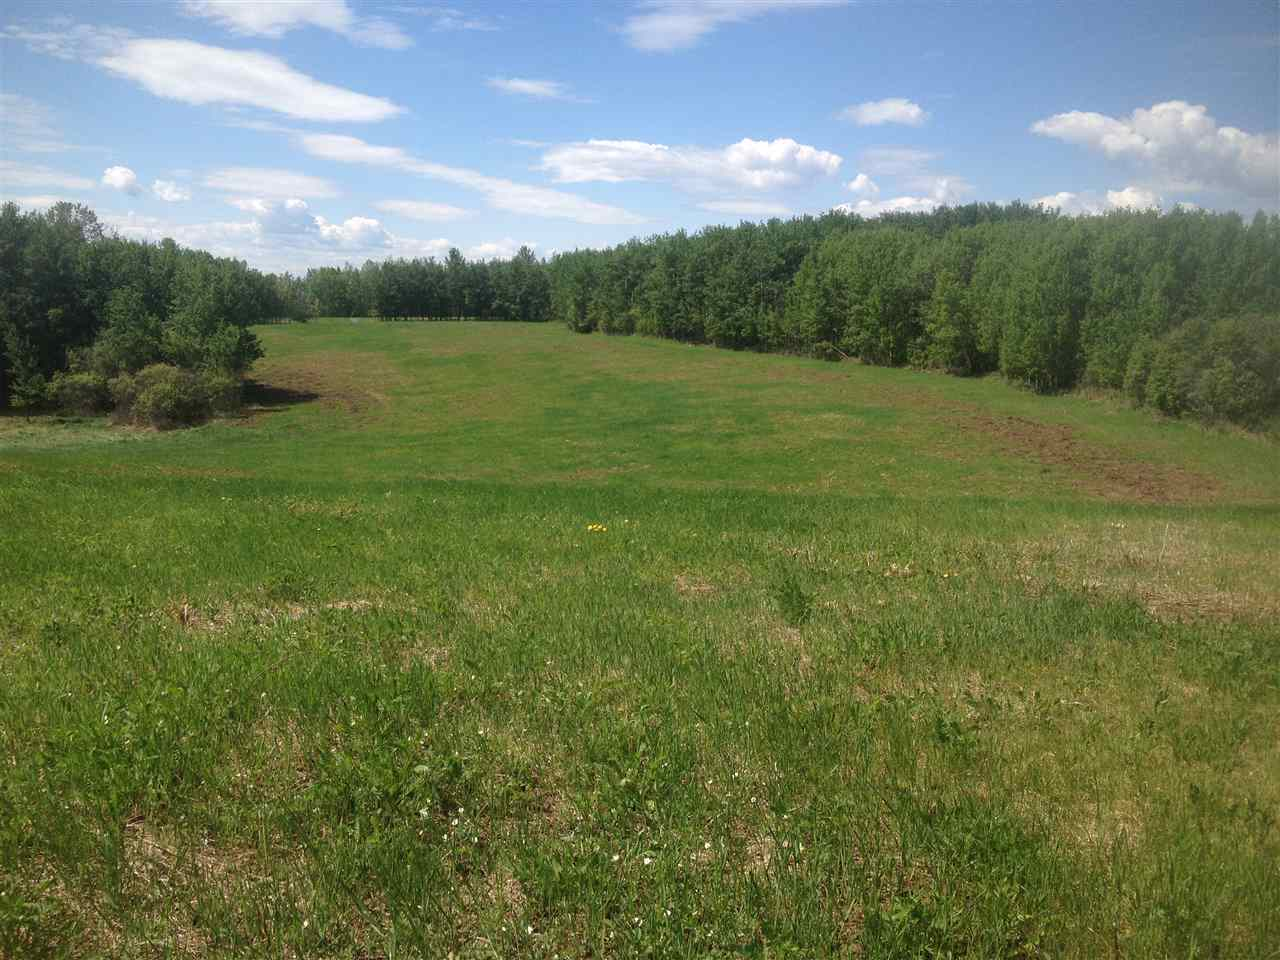 Photo 3: 52502 Range Road 22A: Rural Parkland County Rural Land/Vacant Lot for sale : MLS® # E4069524